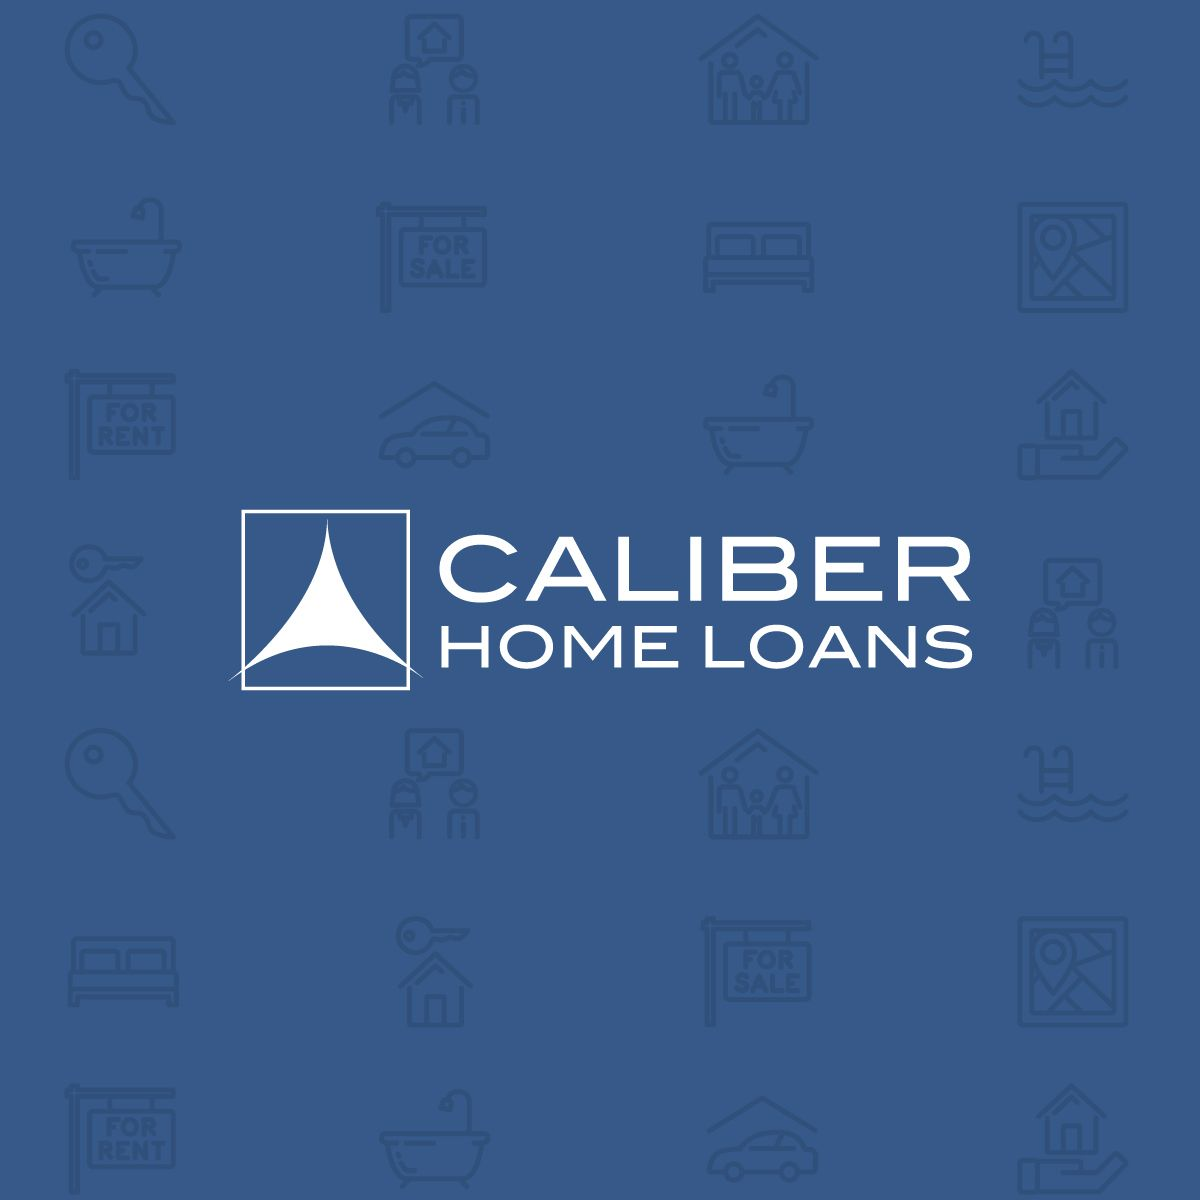 Caliber Home Loans Inc National Mortgage Lender Home Loans